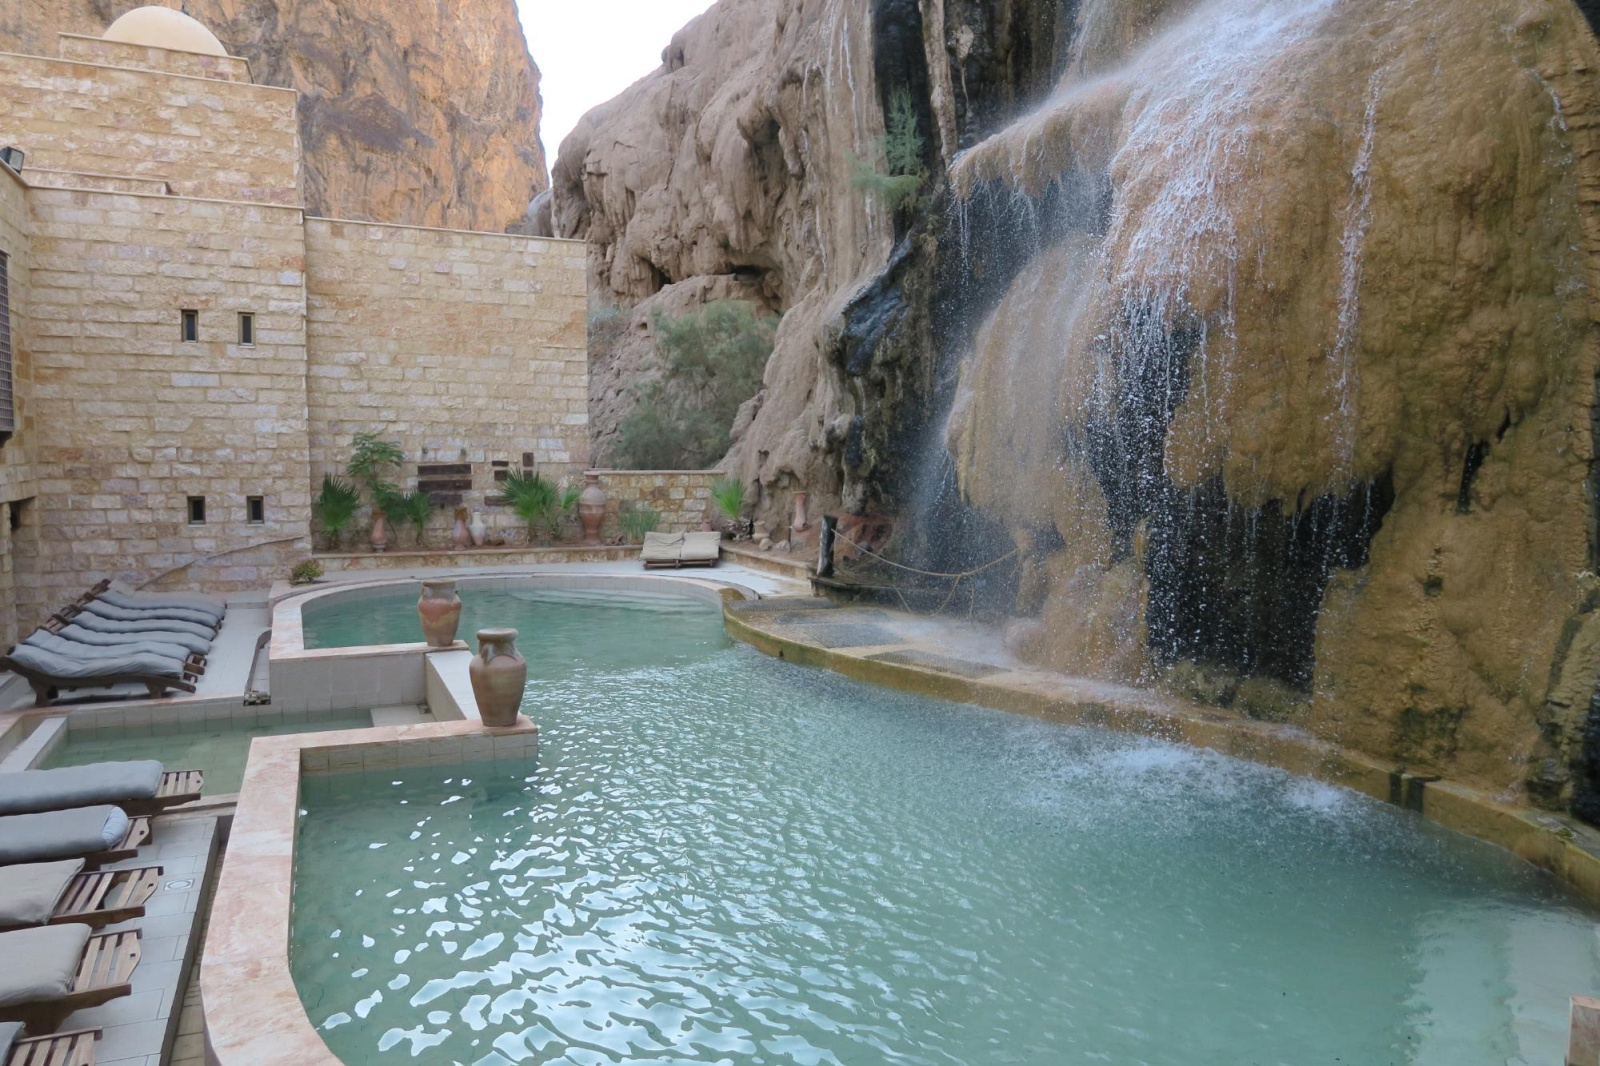 Patagonia South America >> Ma'In Hot Springs Resort & Spa - Hotel in the desert with its own waterfall